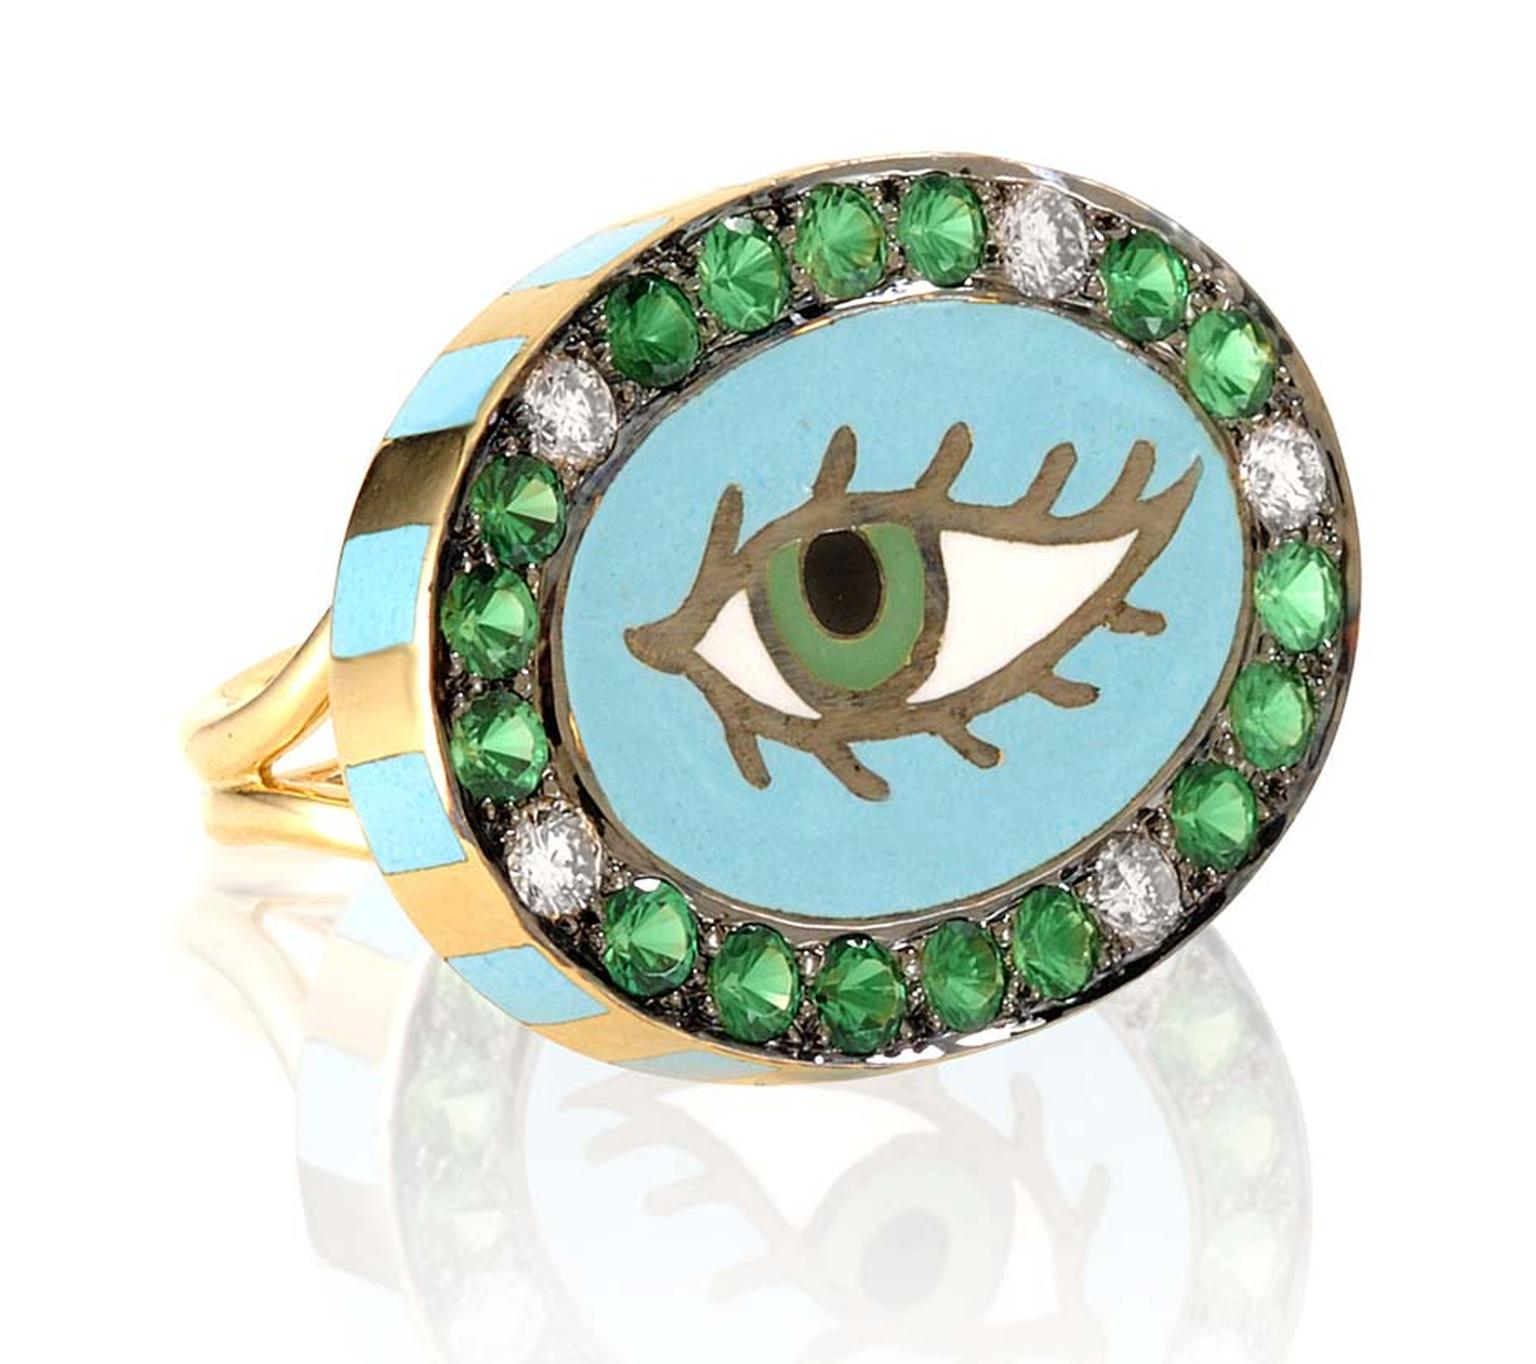 Holly Dyment Green Eye ring featuring vibrant enamel work, diamonds and coloured stones.